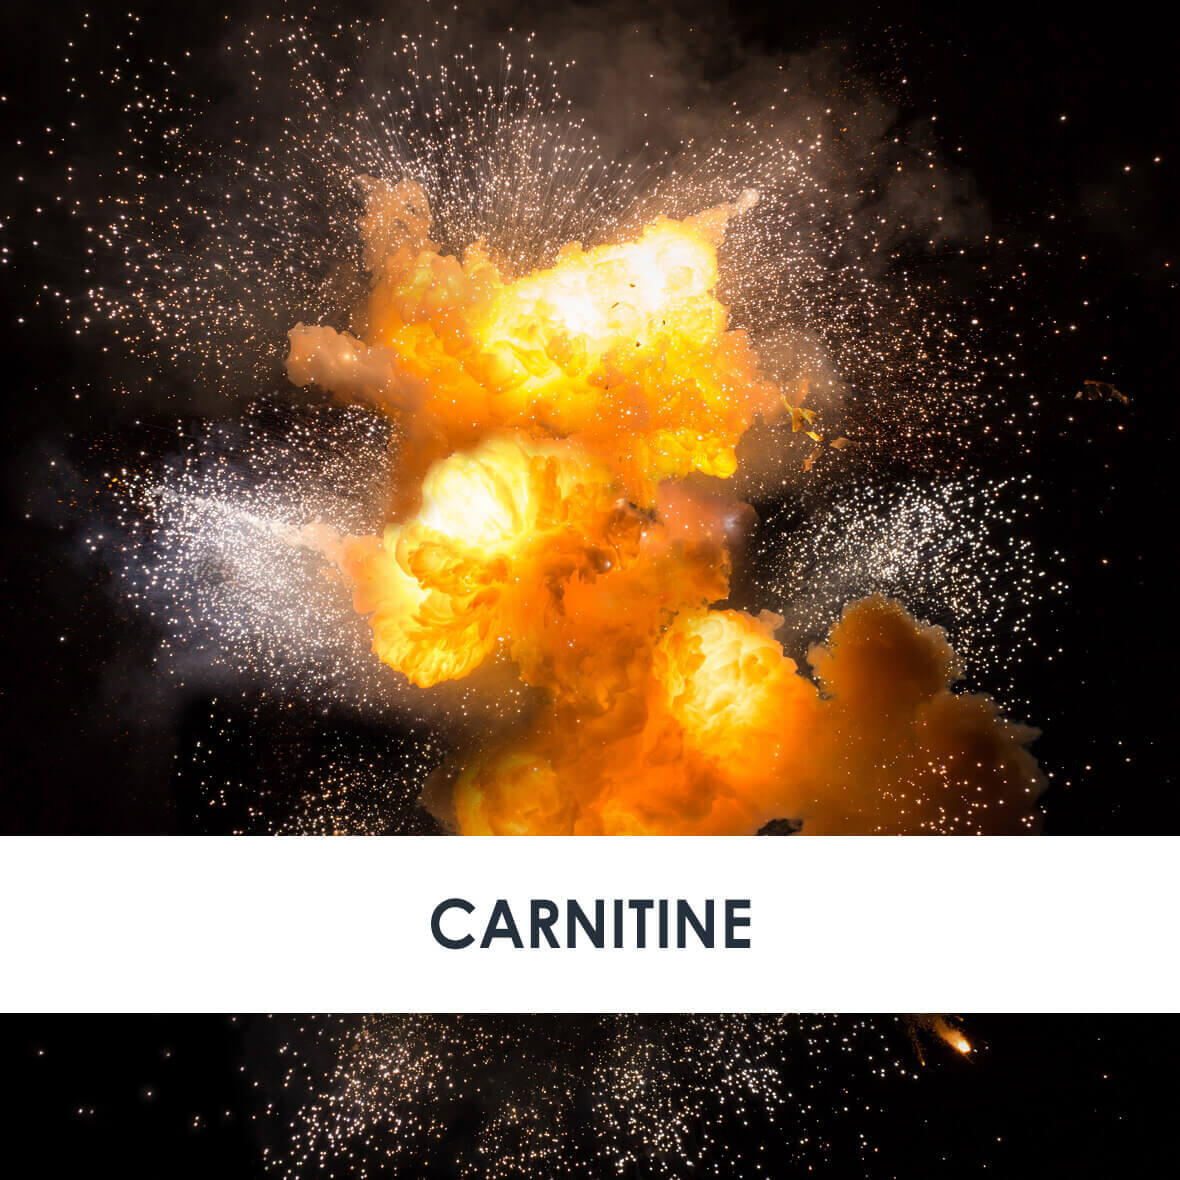 Carnitine Skincare Benefits